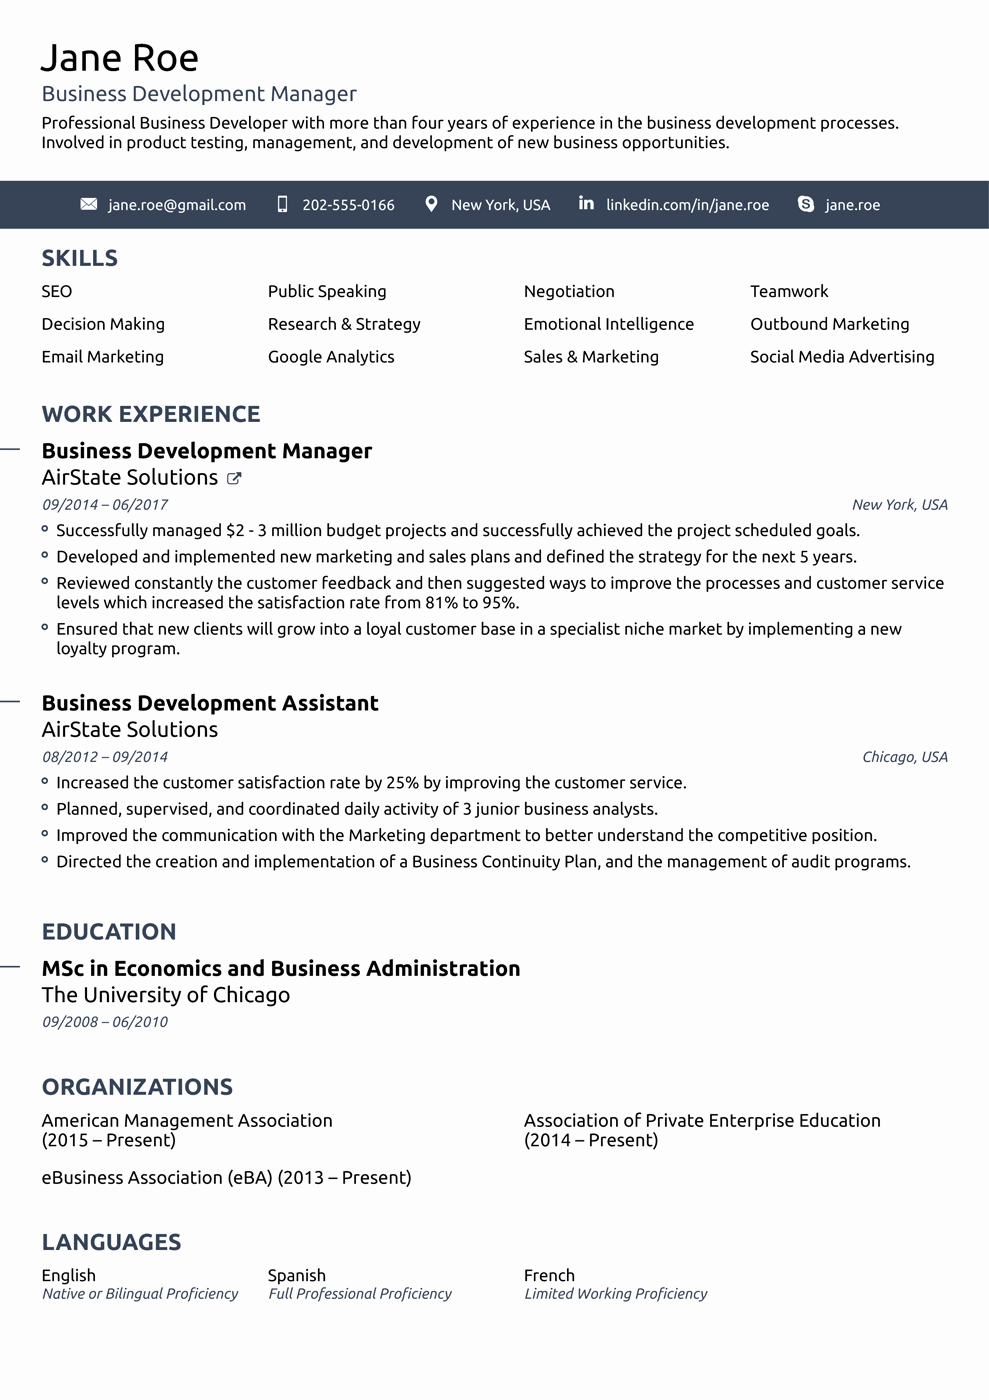 Professional Resume Template Free Awesome 2018 Professional Resume Templates as they Should Be [8 ]